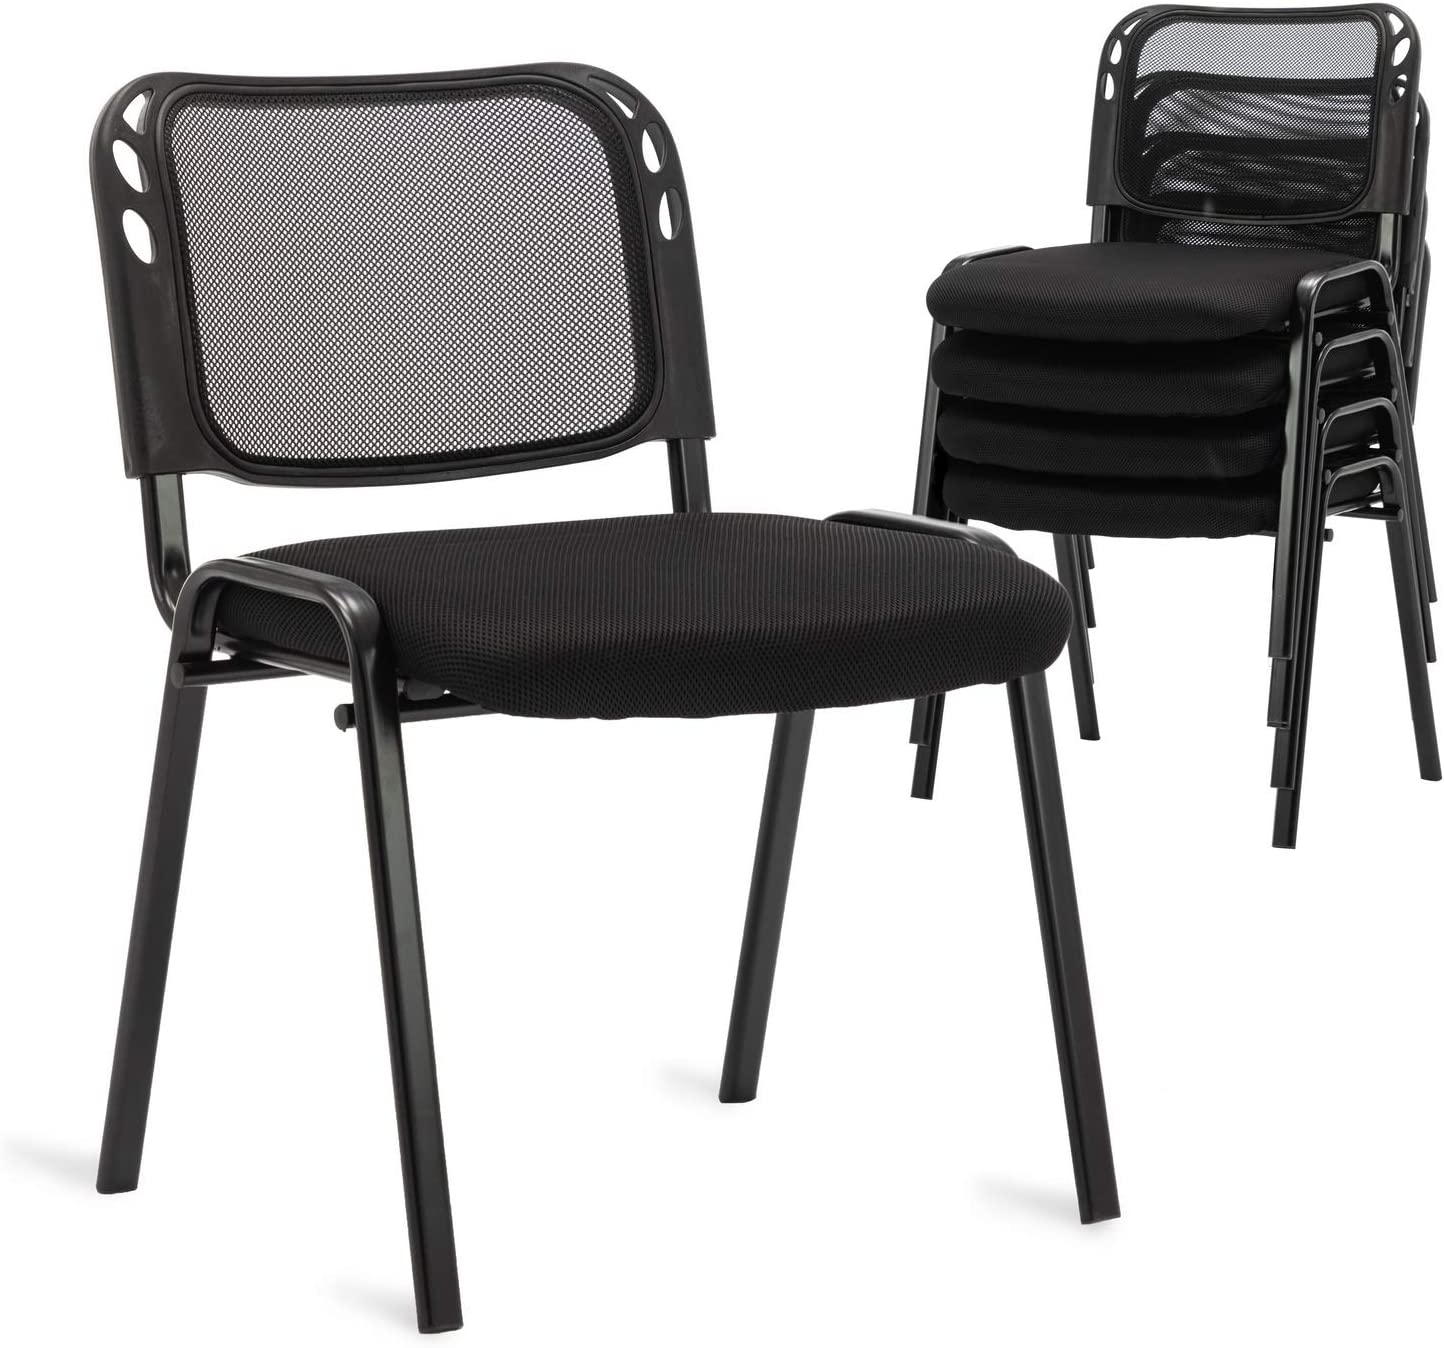 Set of 5 Stackable Conference Chairs, Mesh Back Stacking Guest Chairs, for Office, Business Lobby, Reception Area, Hotel, Conference Room, Seminars, Training Room, Community Centers and Home, Black